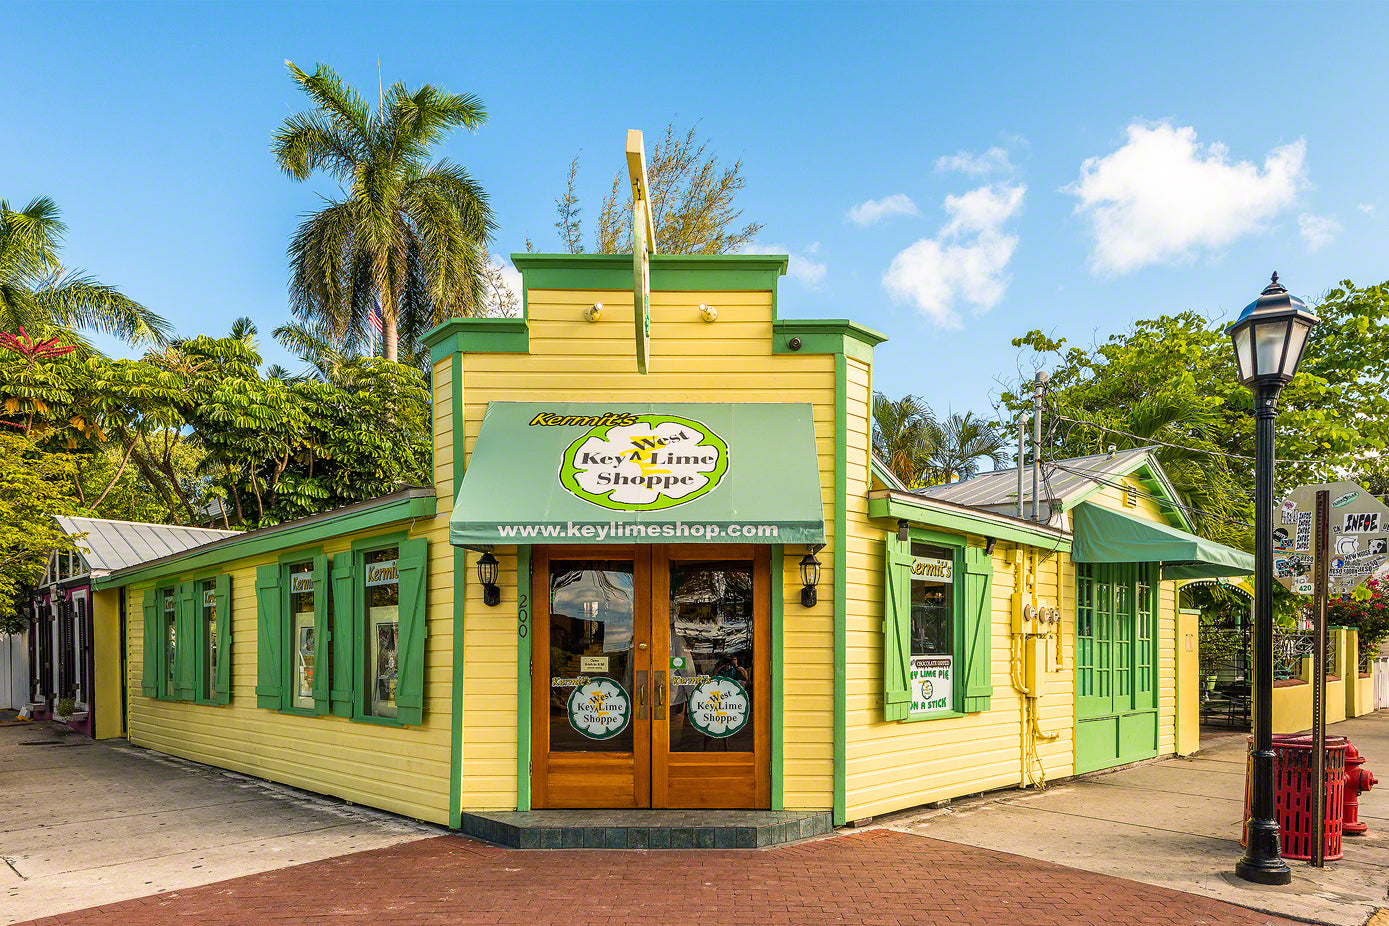 A photo of Kermit's Key Lime Shoppe in Key West, Florida